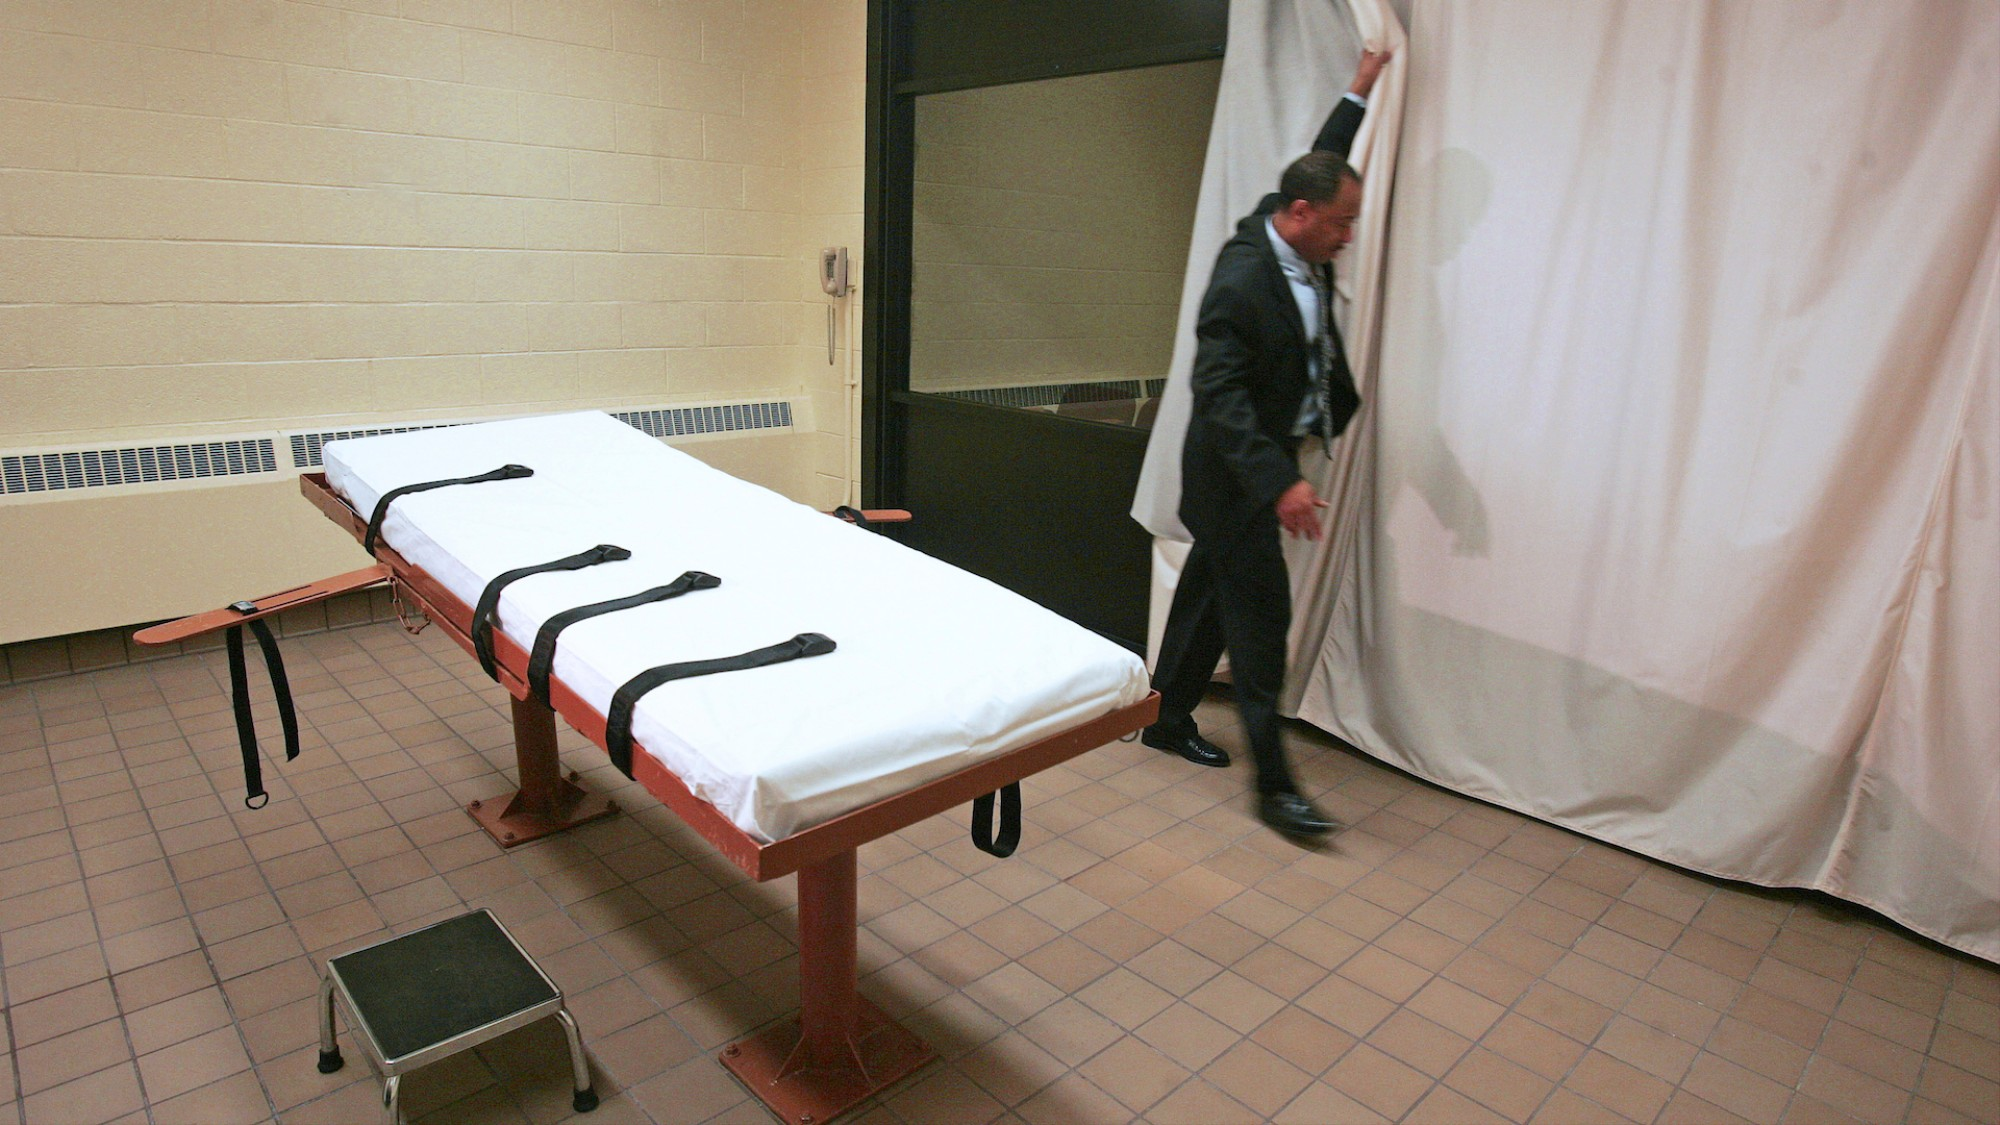 Death row inmate who survived his own execution really doesn